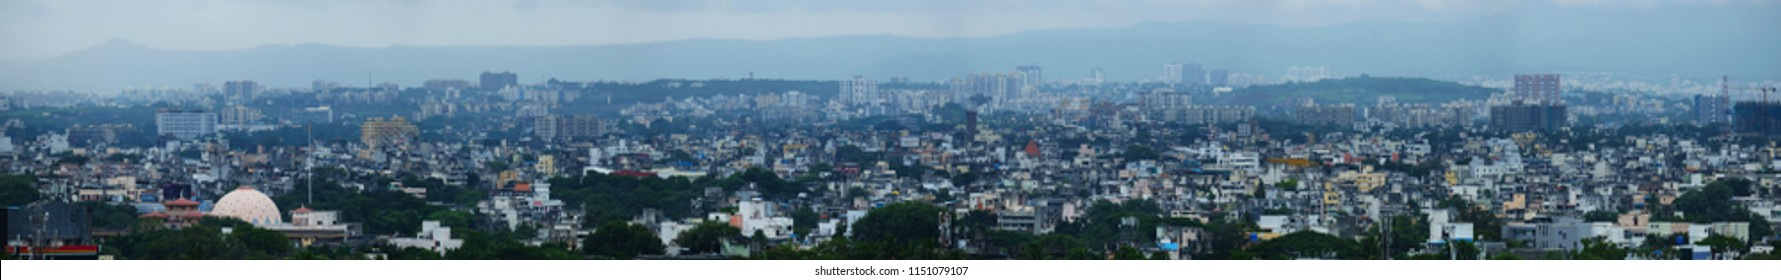 Panoramic view of Pune Cityscape Skyline, buildings holdings, Signboards, and banners, Pune, Maharashtra, India - 20 July 2018 